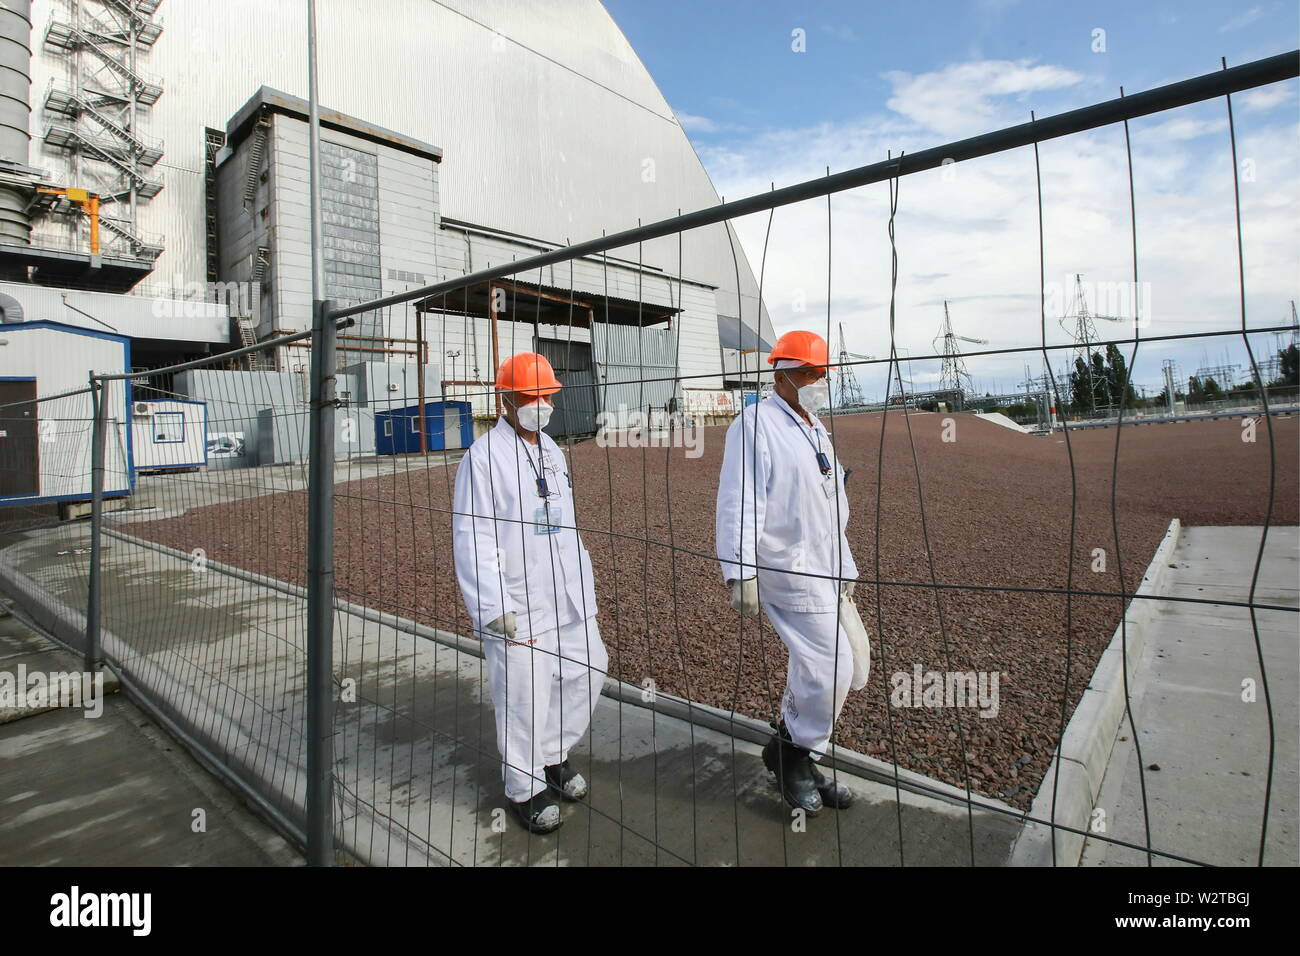 Pripyat, Ukraine. 10th July, 2019. PRIPYAT, UKRAINE - JULY 10, 2019: Workers outside the new mobile metal structure, officially known as the New Safe Confinement, built over Reactor 4 of the Chernobyl Nuclear Power Plant, the new metal shelter has been officially handed over by the EU to the Ukrainian authorities; the construction of the 1.5bn euro metal shelter began in 2012; Reactor 4 is the site of the 1986 Chernobyl disaster. Pyotr Sivkov/TASS Credit: ITAR-TASS News Agency/Alamy Live News - Stock Image